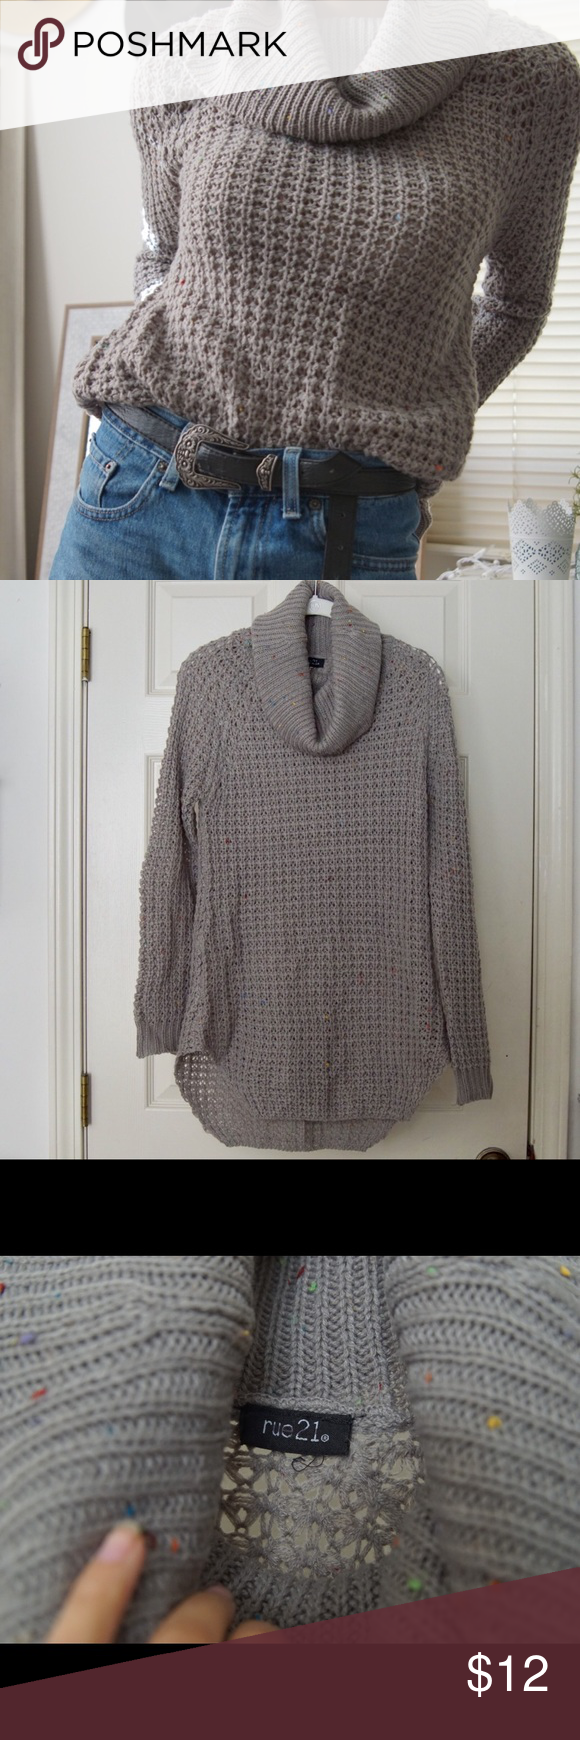 ca053367f0 Rue 21 Gray with multi color speckle Sweater Rue 21 Gray with multi color speckle  Sweater GREAT CONDITION Perfect for fall time and the holidays!